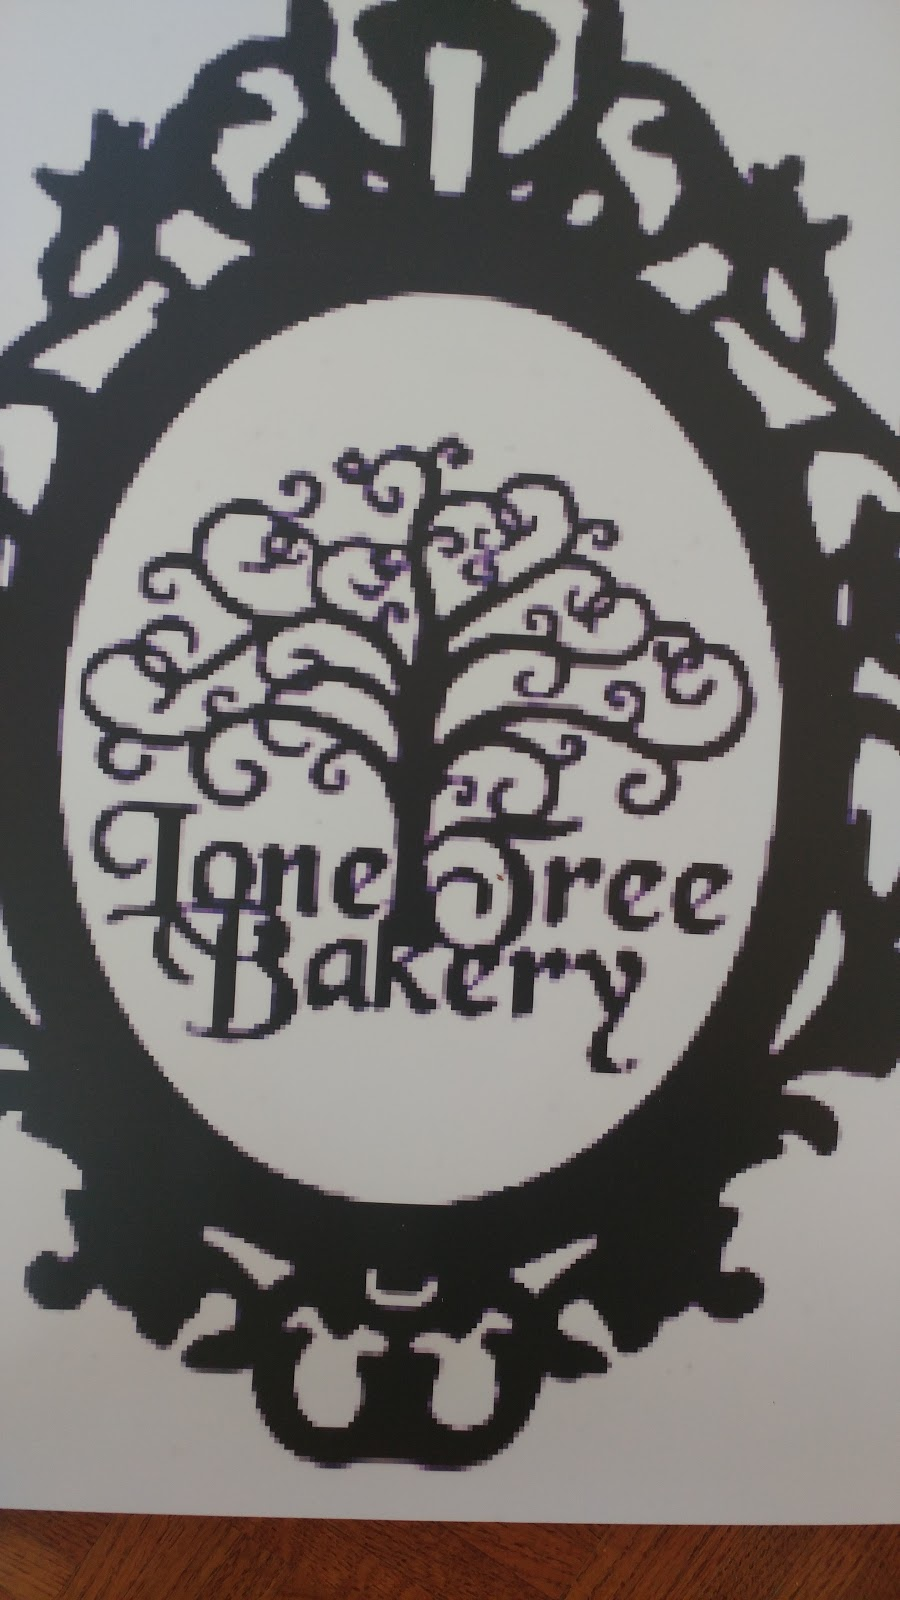 Lone Tree Bakery | bakery | 809 Craigflower Rd, Victoria, BC V9A 2W8, Canada | 7784322070 OR +1 778-432-2070